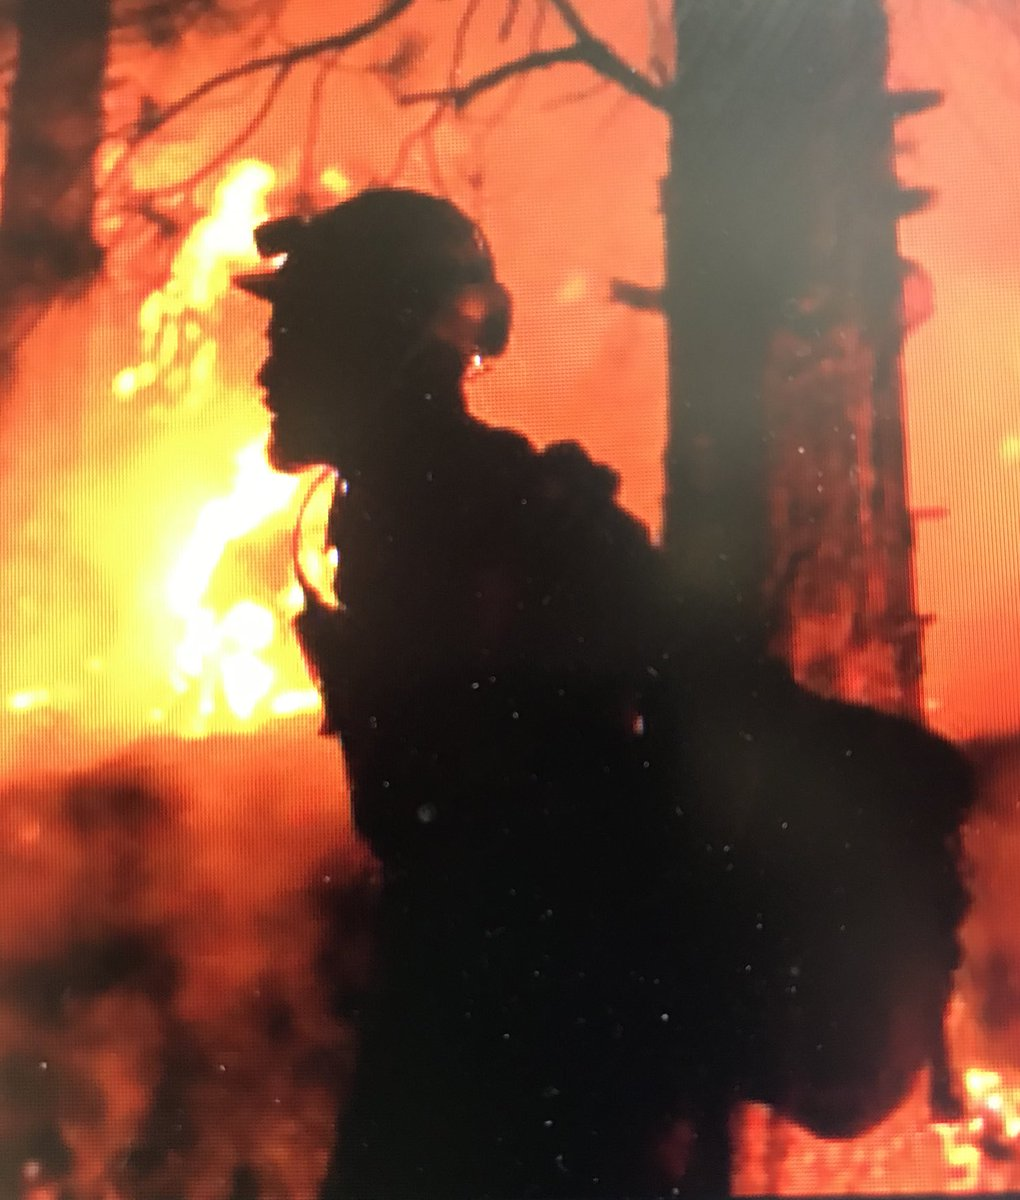 NEV. PILOT FINDS MISSING FIREFIGHTER: @NVNationalGuard helicopter pilot CW4 Kevin Keeler of LV found the missing Ore. firefighter at the Bootleg Fire on Sunday! Keeler is the lone NV Soldier at the blaze; he's likely to be recognized by @ChiefNGB later this week https://t.co/Sjvw3GfQg6